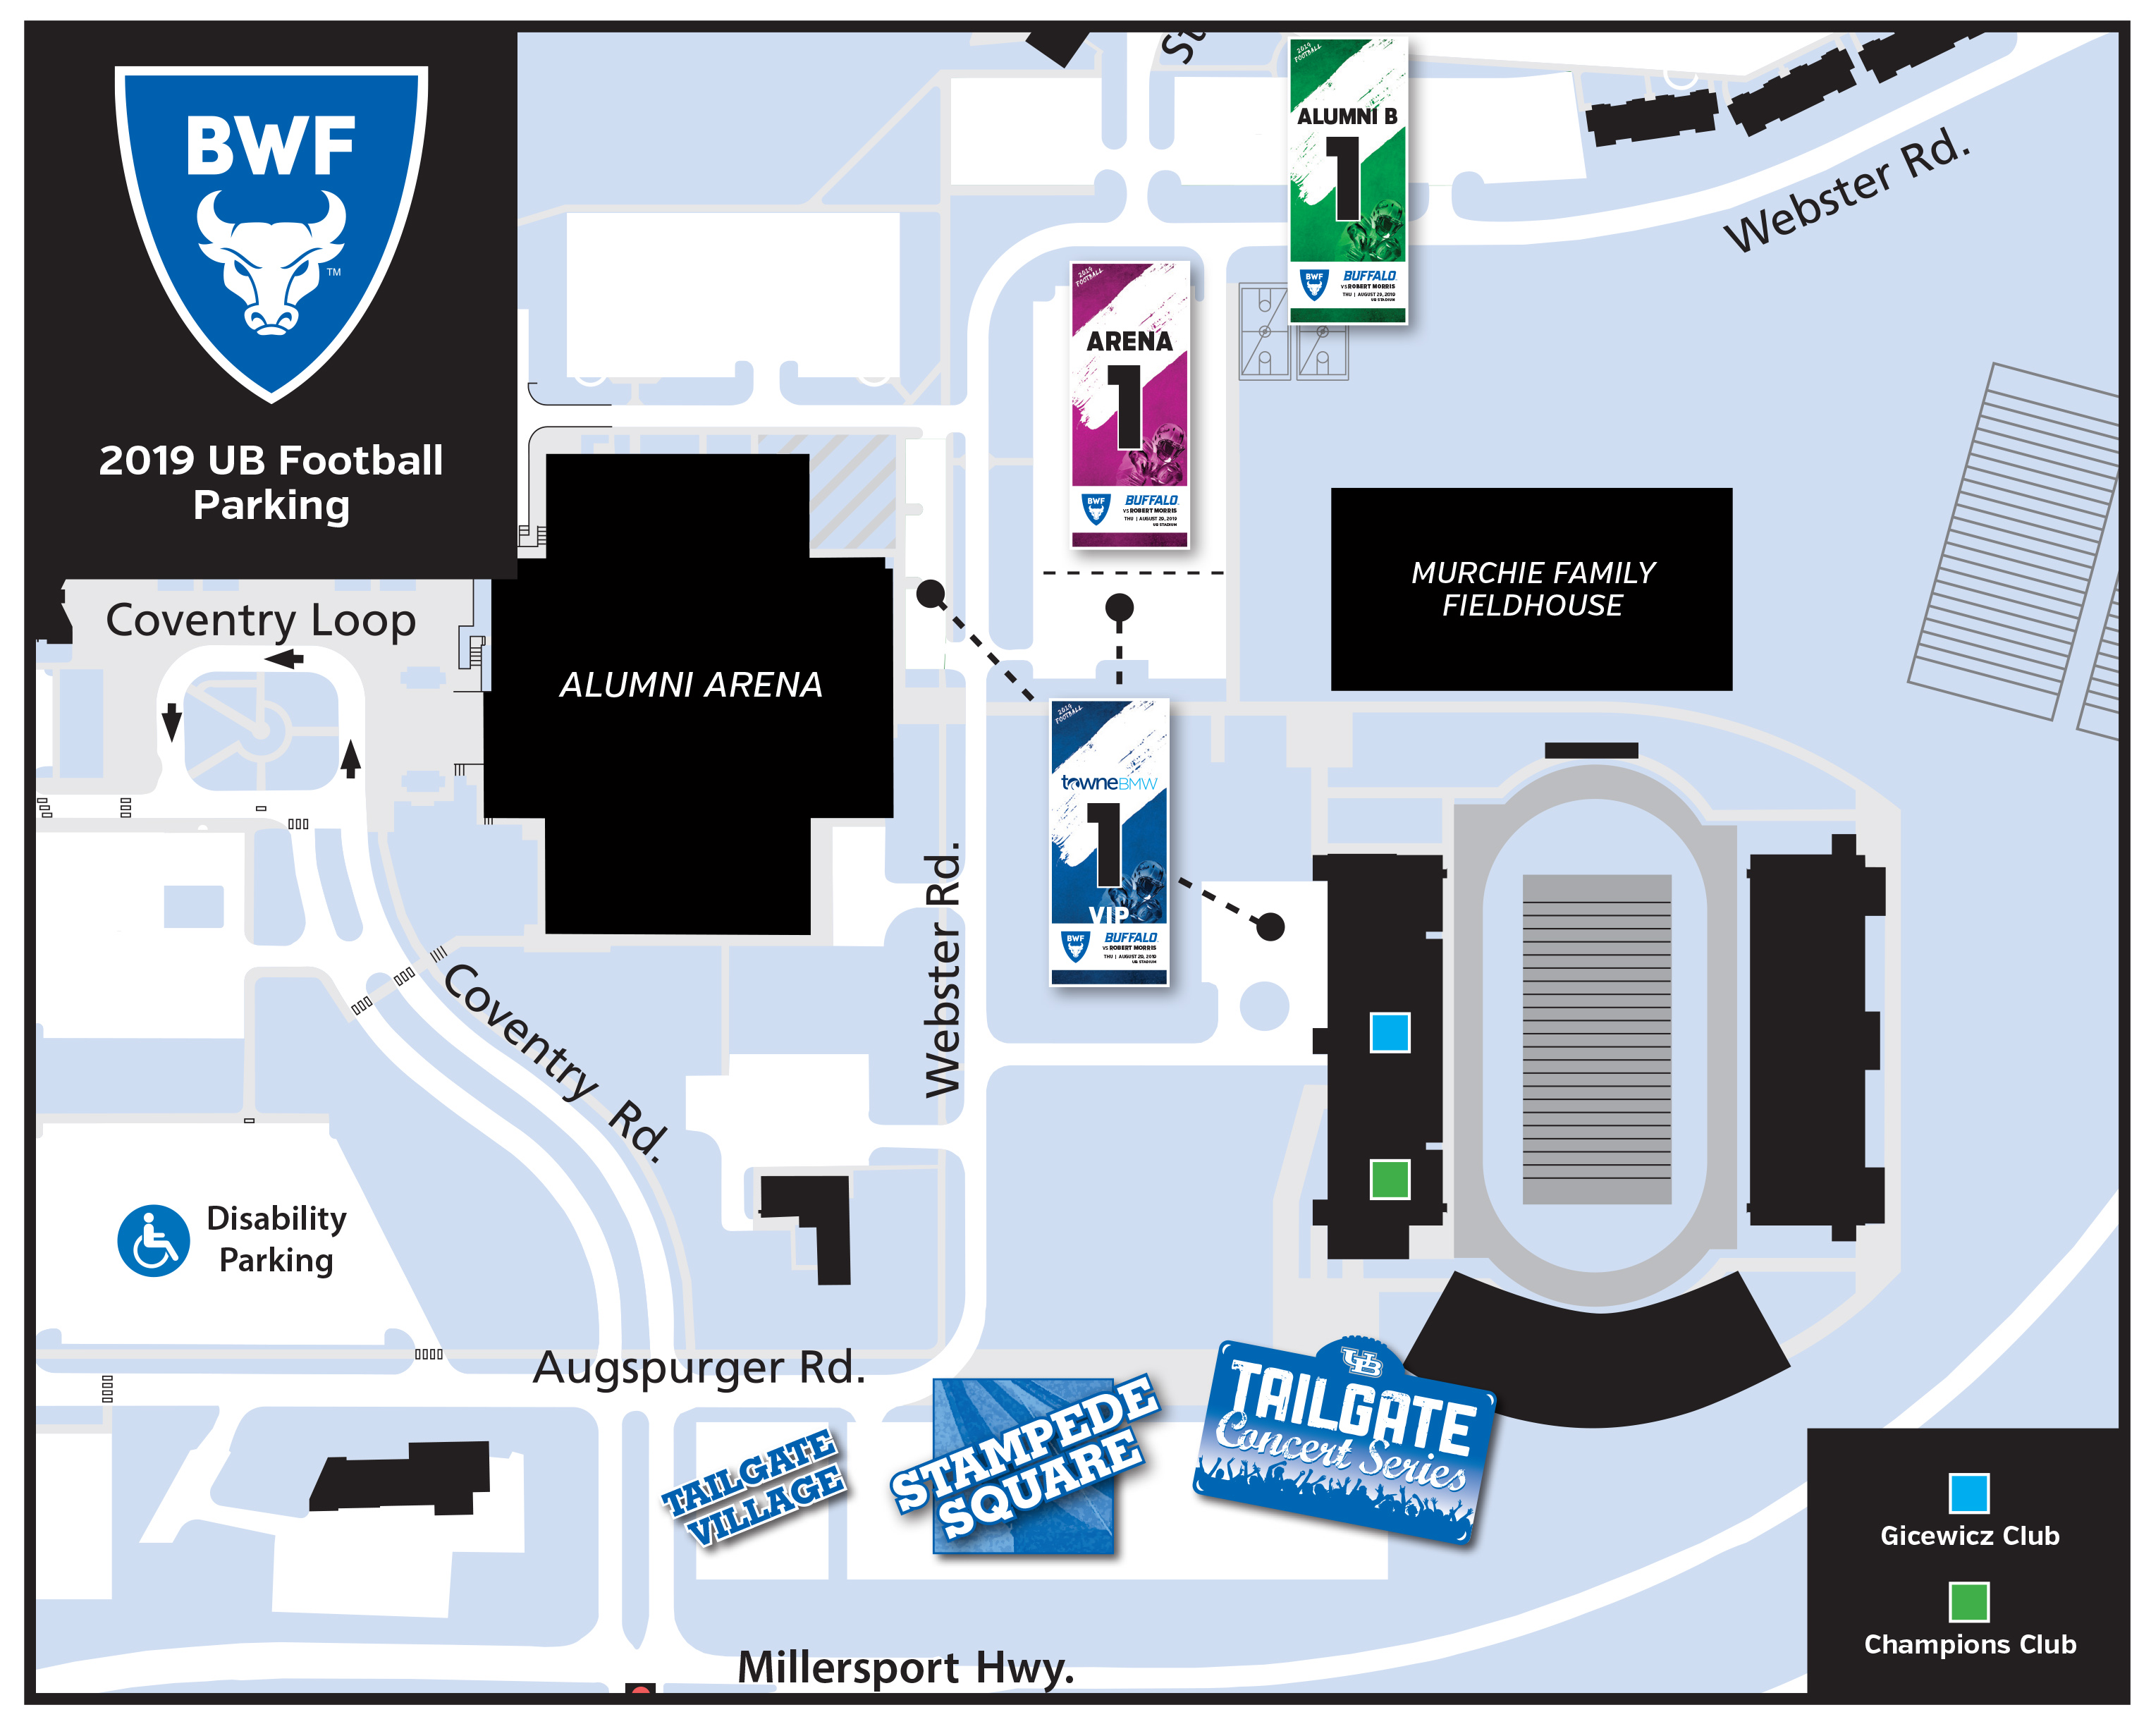 2019 UB Football Parking Map